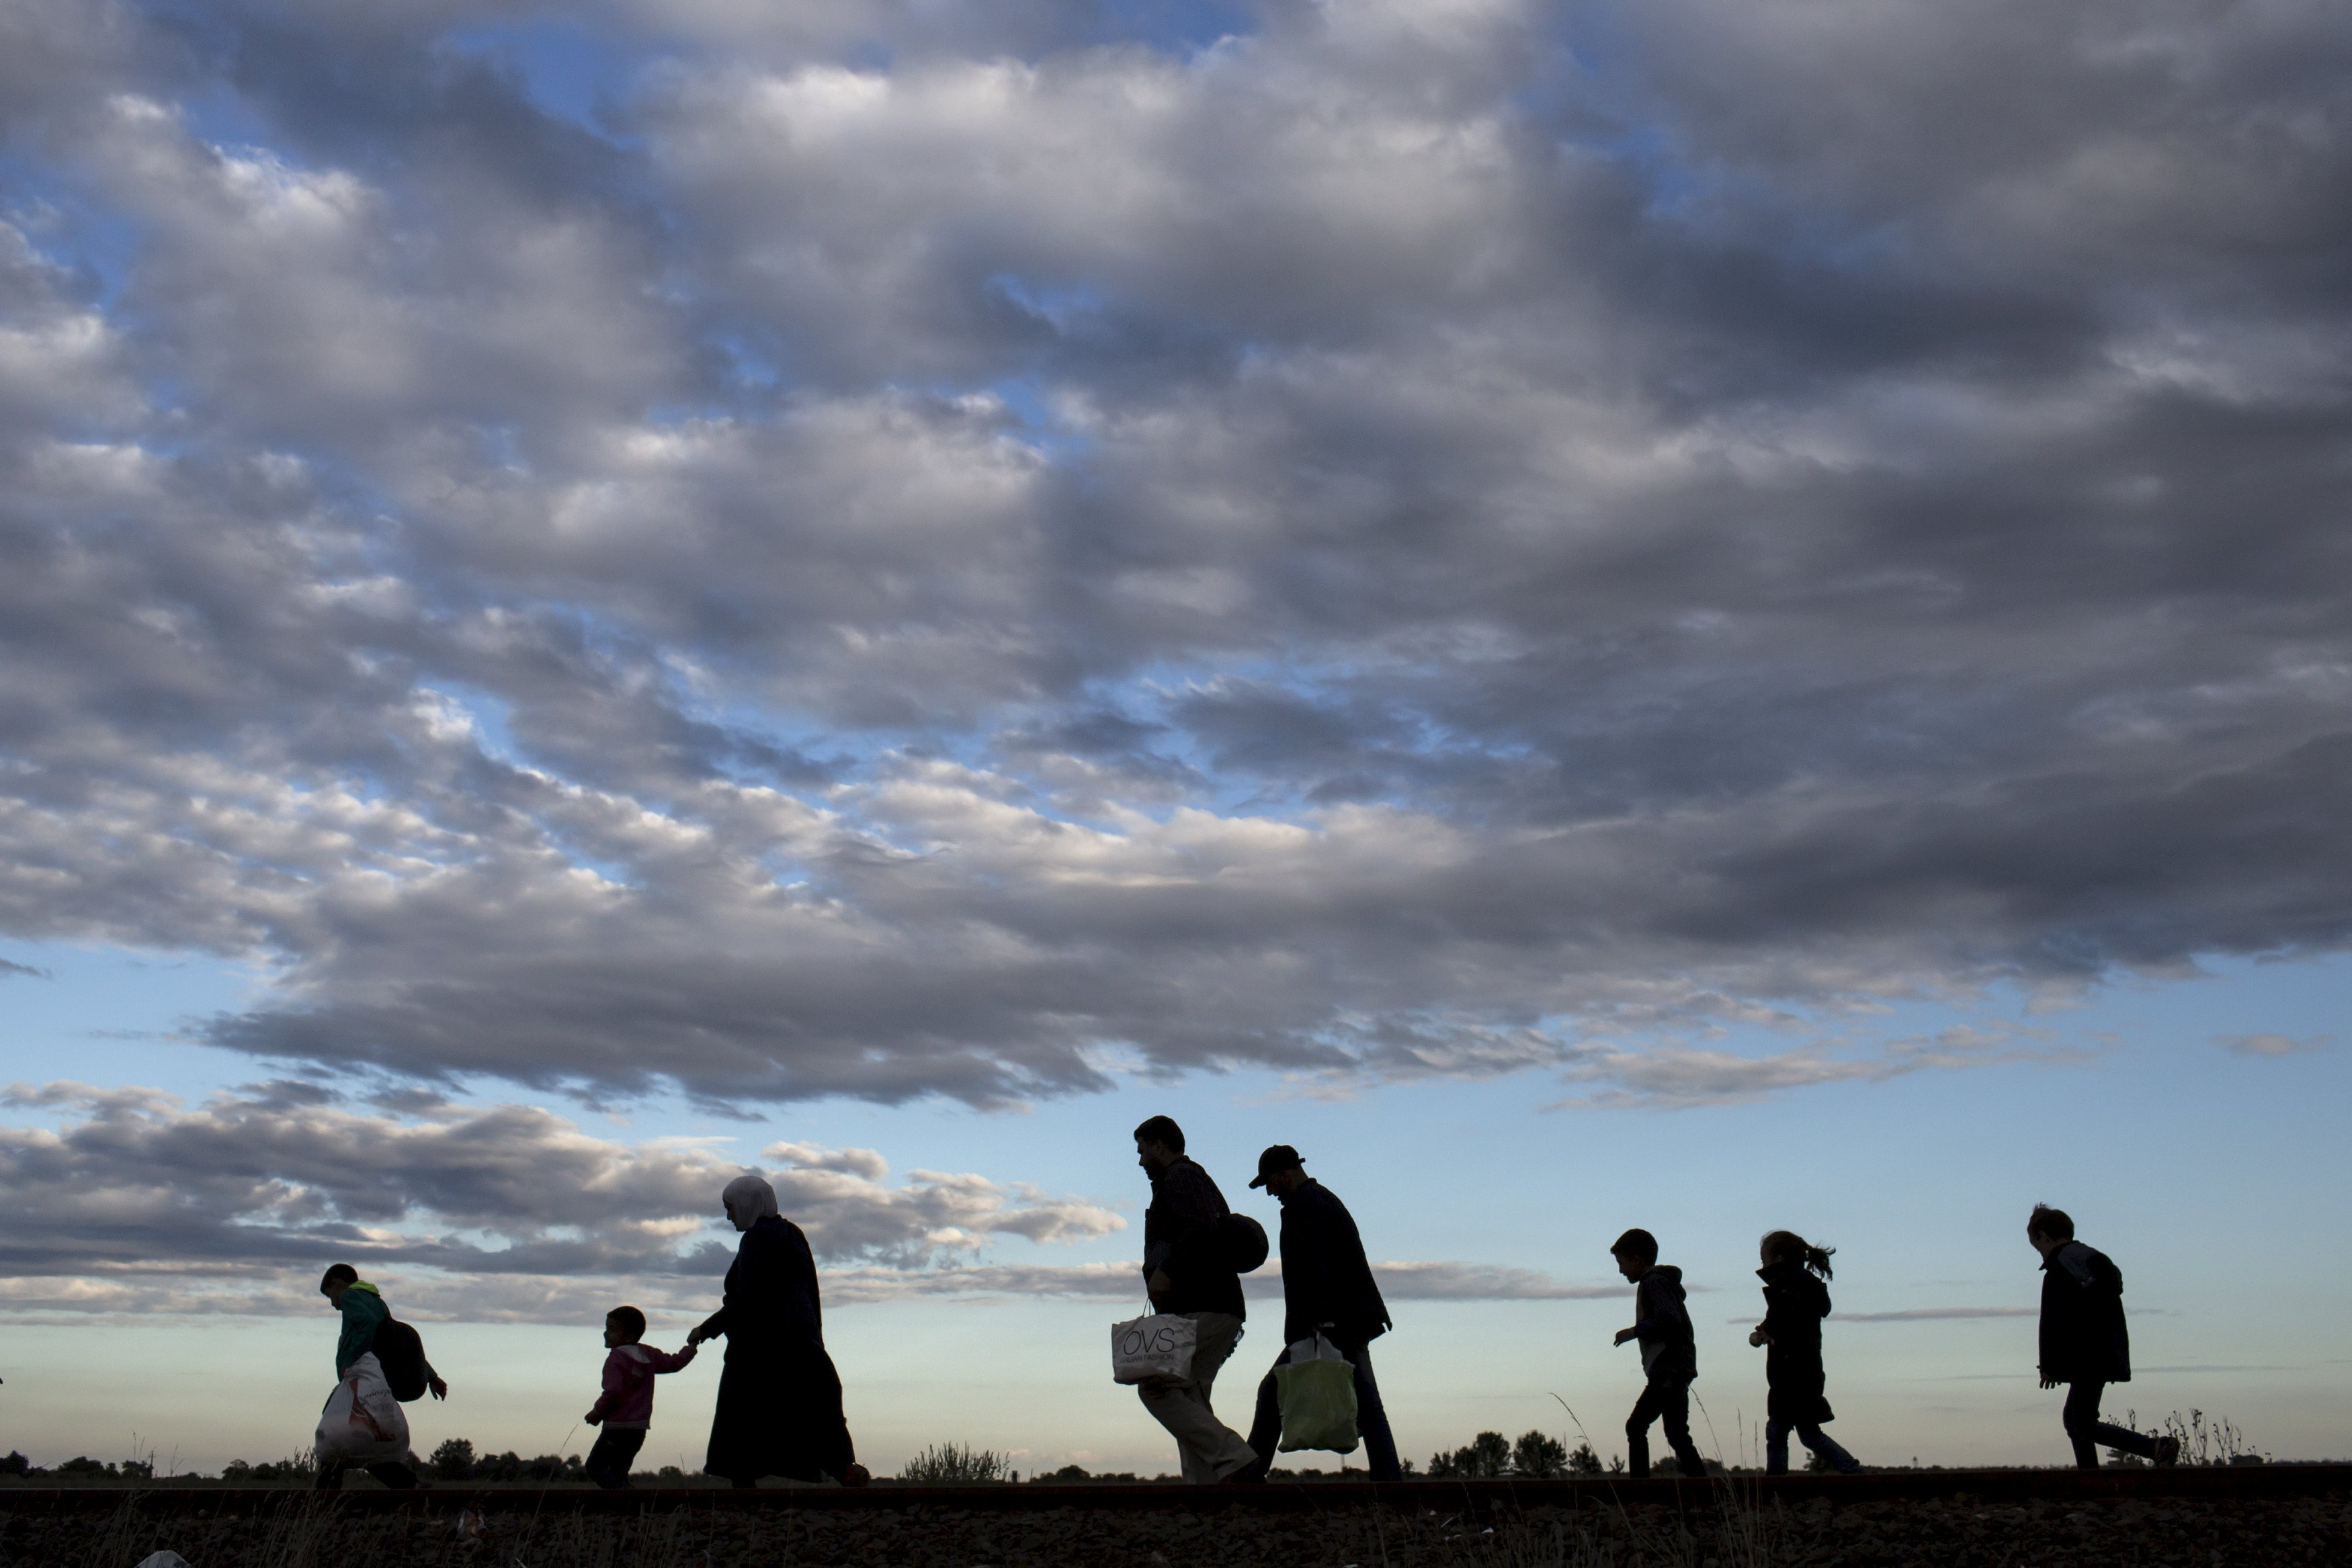 Migrants walk along rail tracks as they arrive to a collection point in the village of Roszke, Hungary, on Sept. 6, 2015.